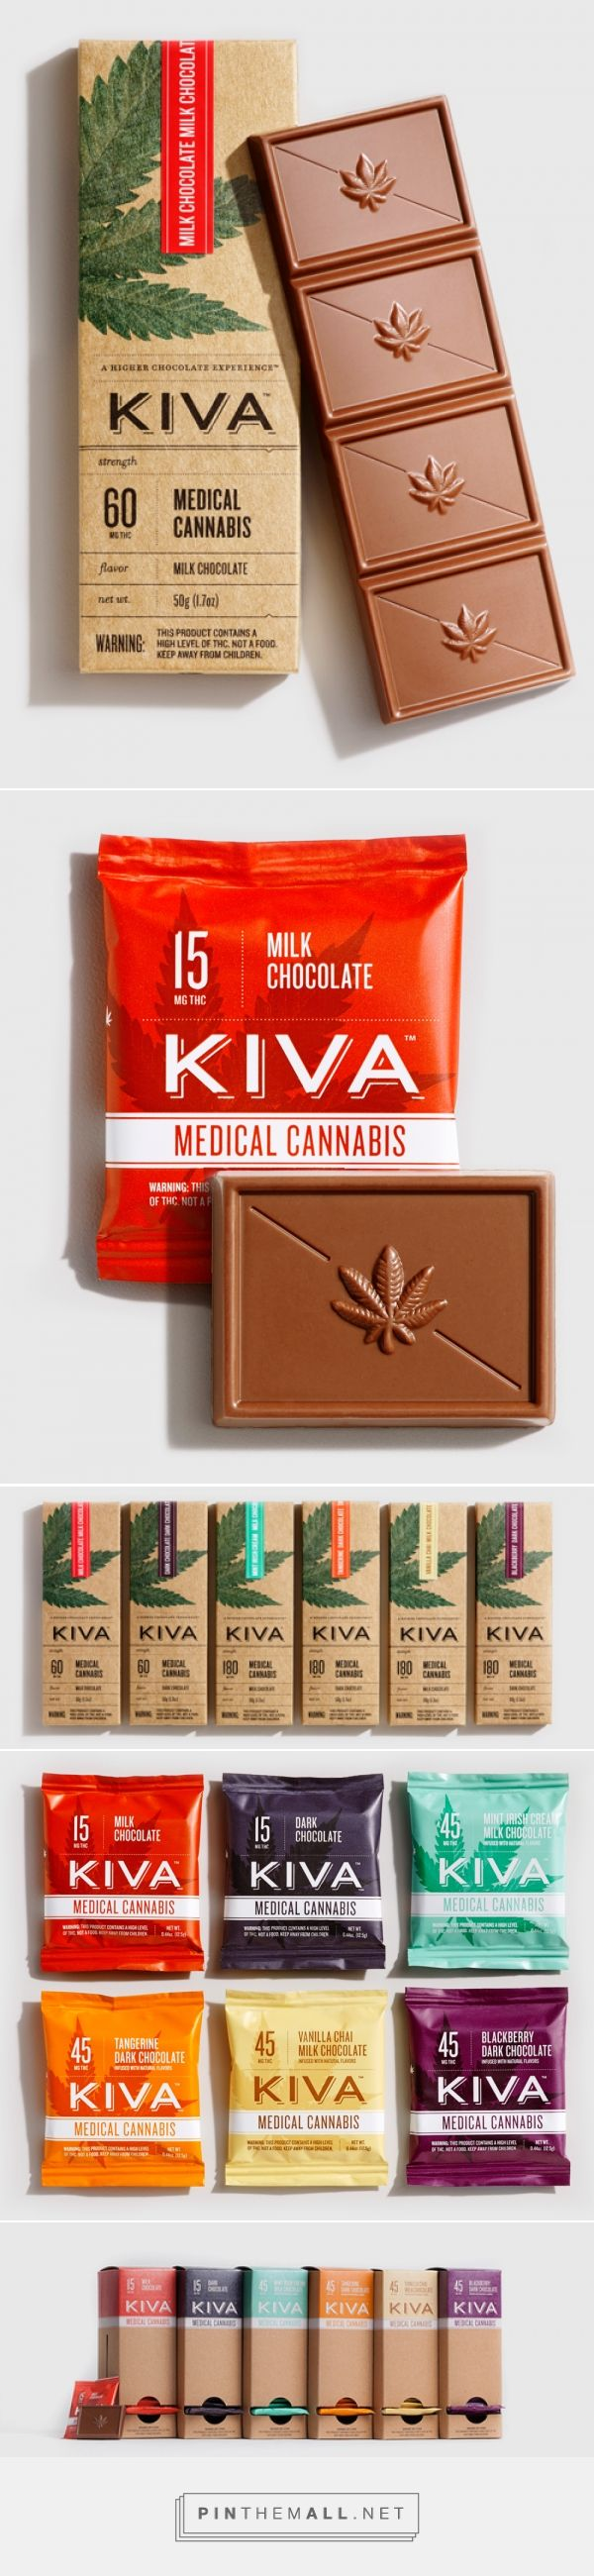 Nathan Sharp revamps Kiva chocolate medical cannabis packaging curated by Packaging Diva PD. Want to try some now?